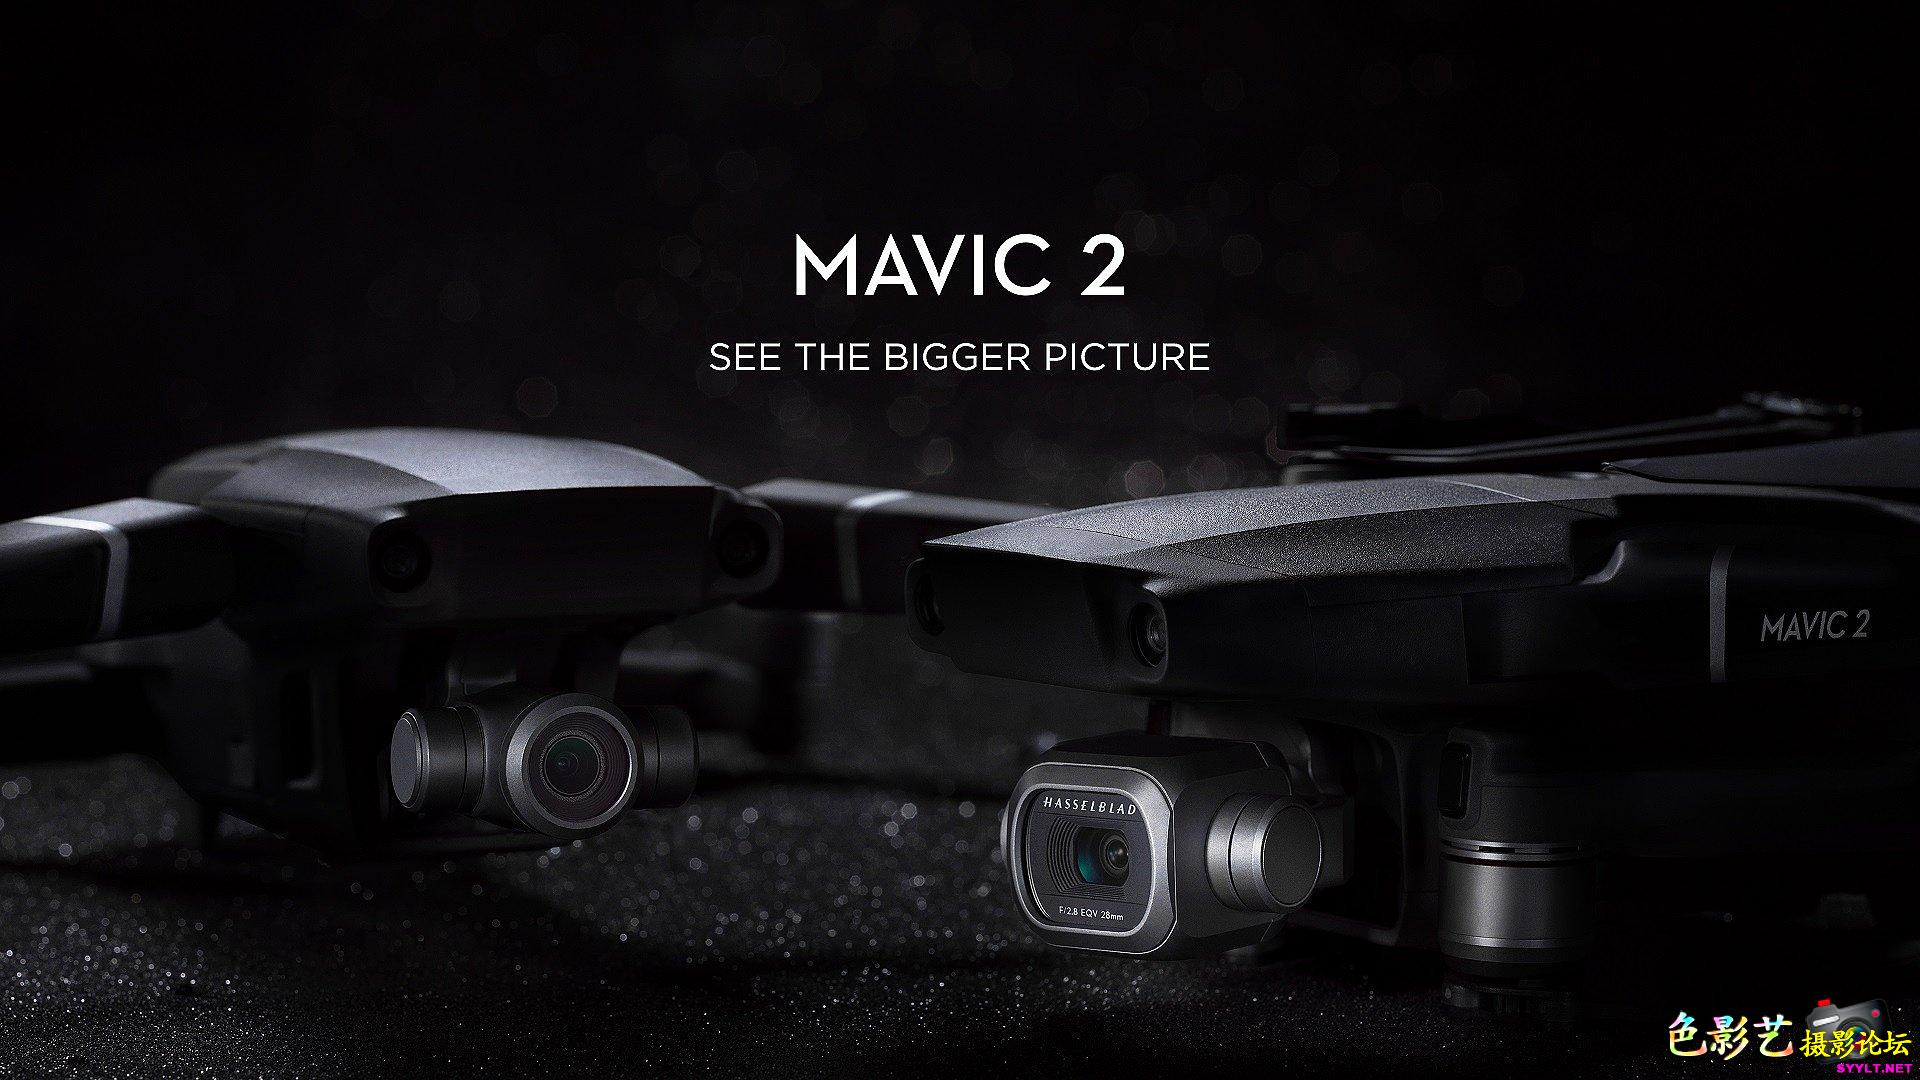 Mavic-2-Series-key-visual.jpg